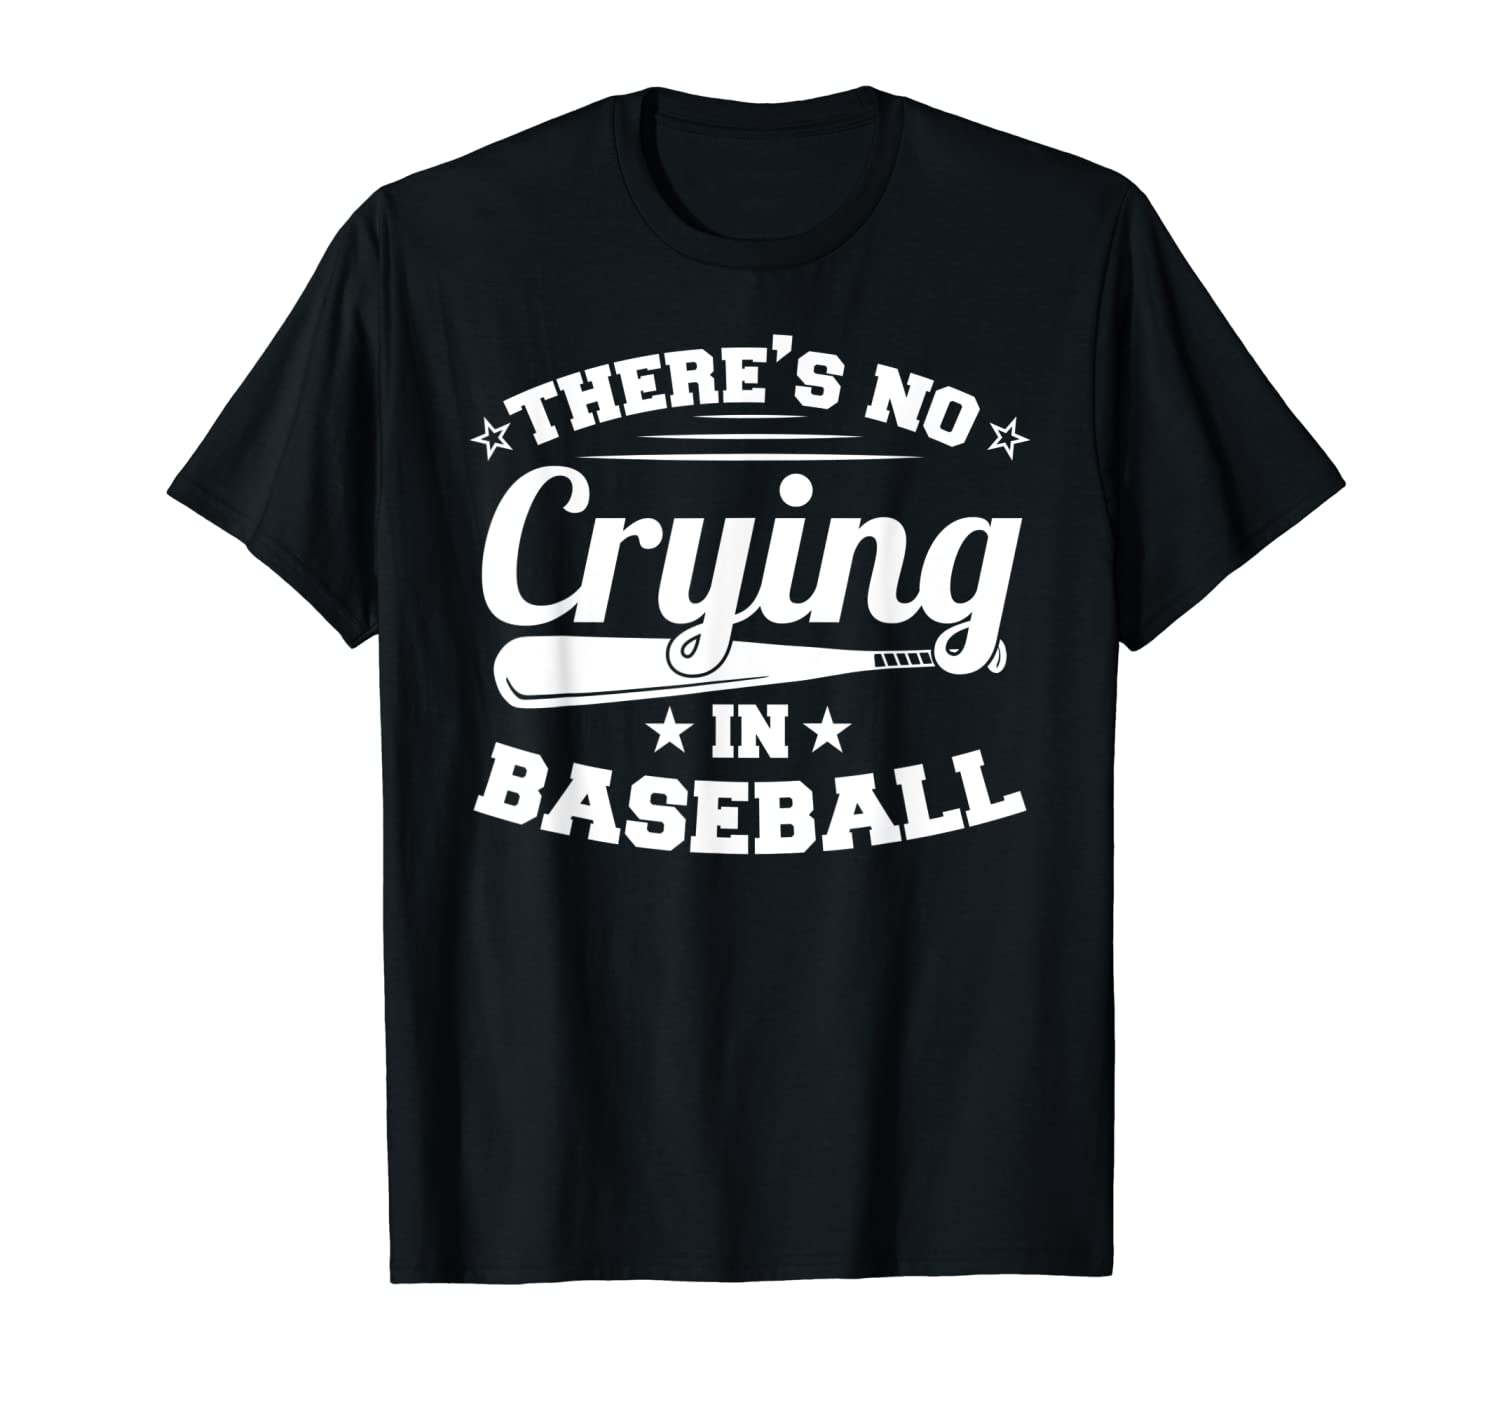 93b28983d Amazon.com: There's No Crying in Baseball T-shirt: Clothing